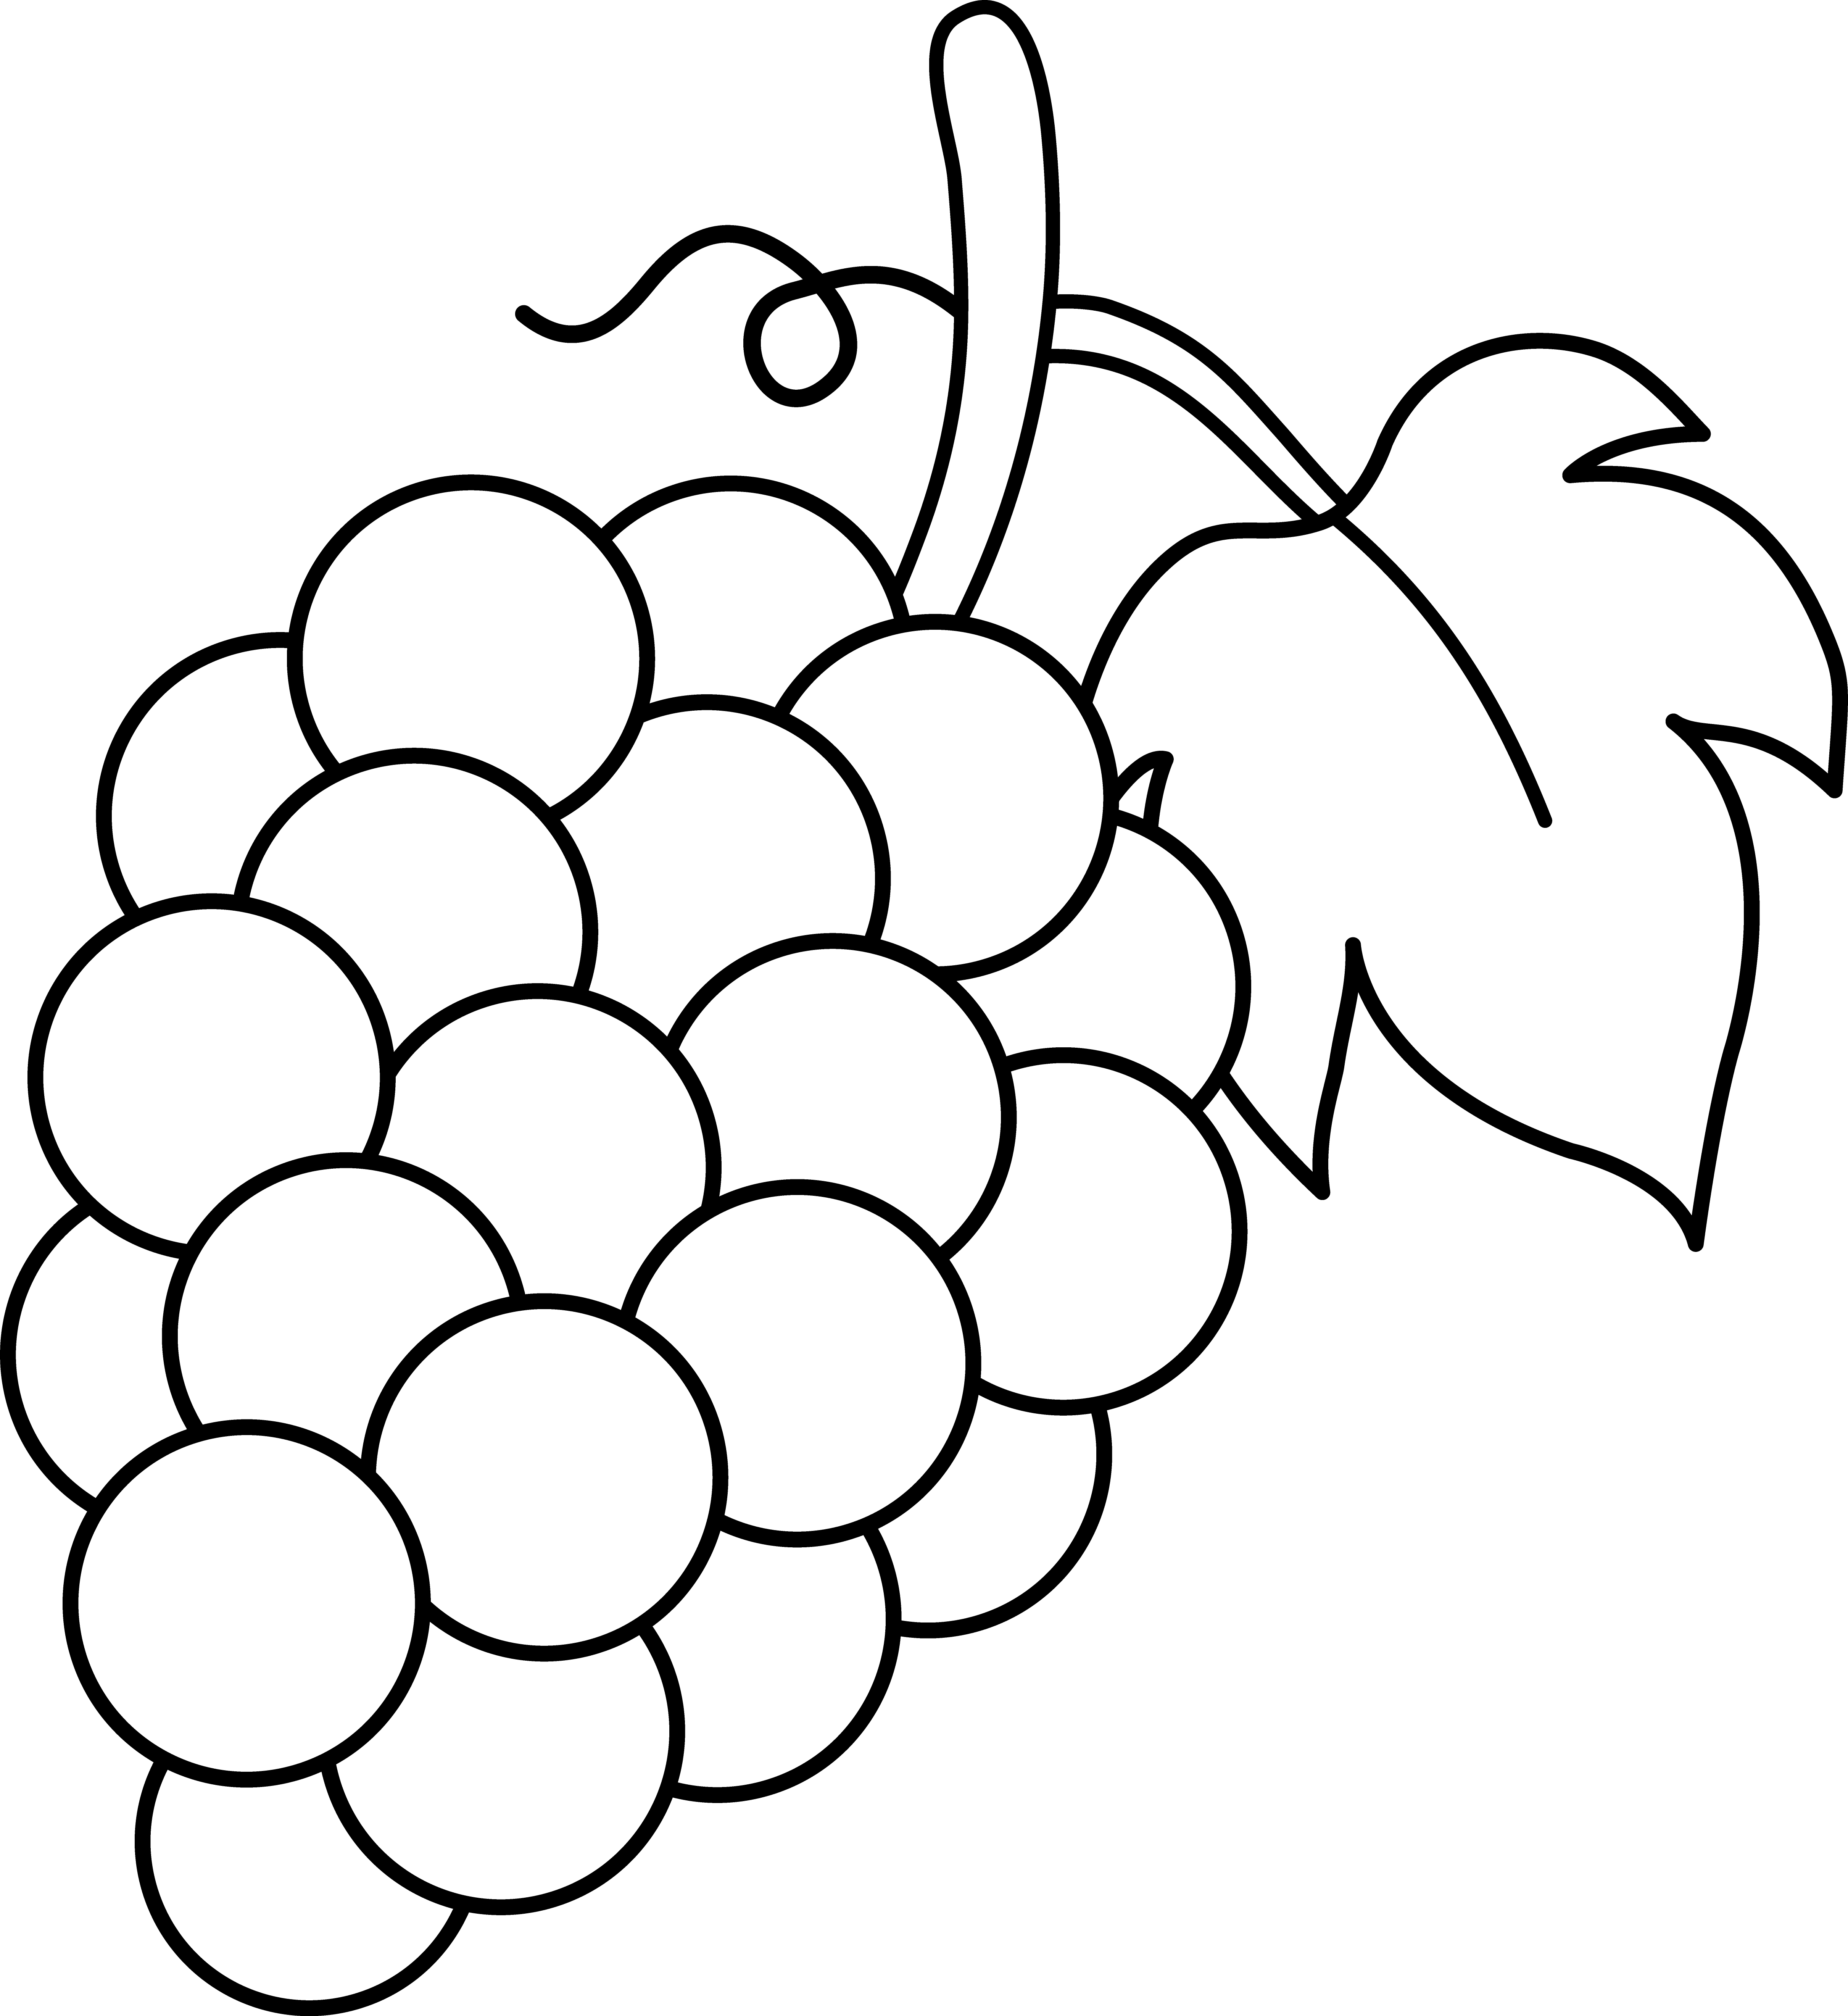 how to draw a grape healthy fruit grapes coloring pages color luna a how grape draw to